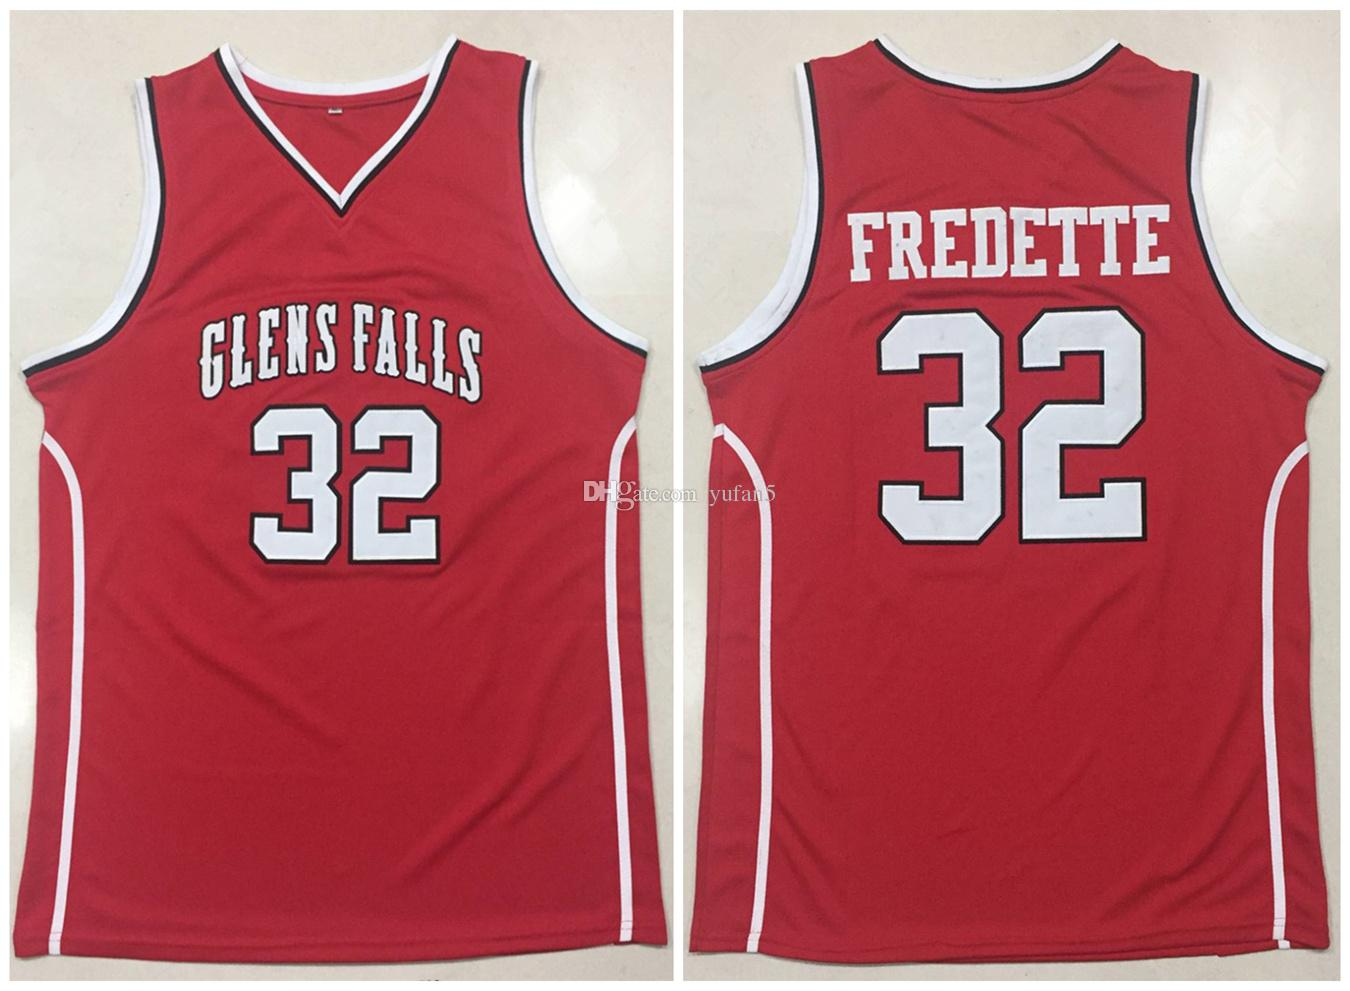 low priced 2bbaf 4dc51 Glens Falls Indians High School Jimmer Fredette #32 Red Retro Basketball  Jersey Mens Stitched Custom Any Number Name Jerseys